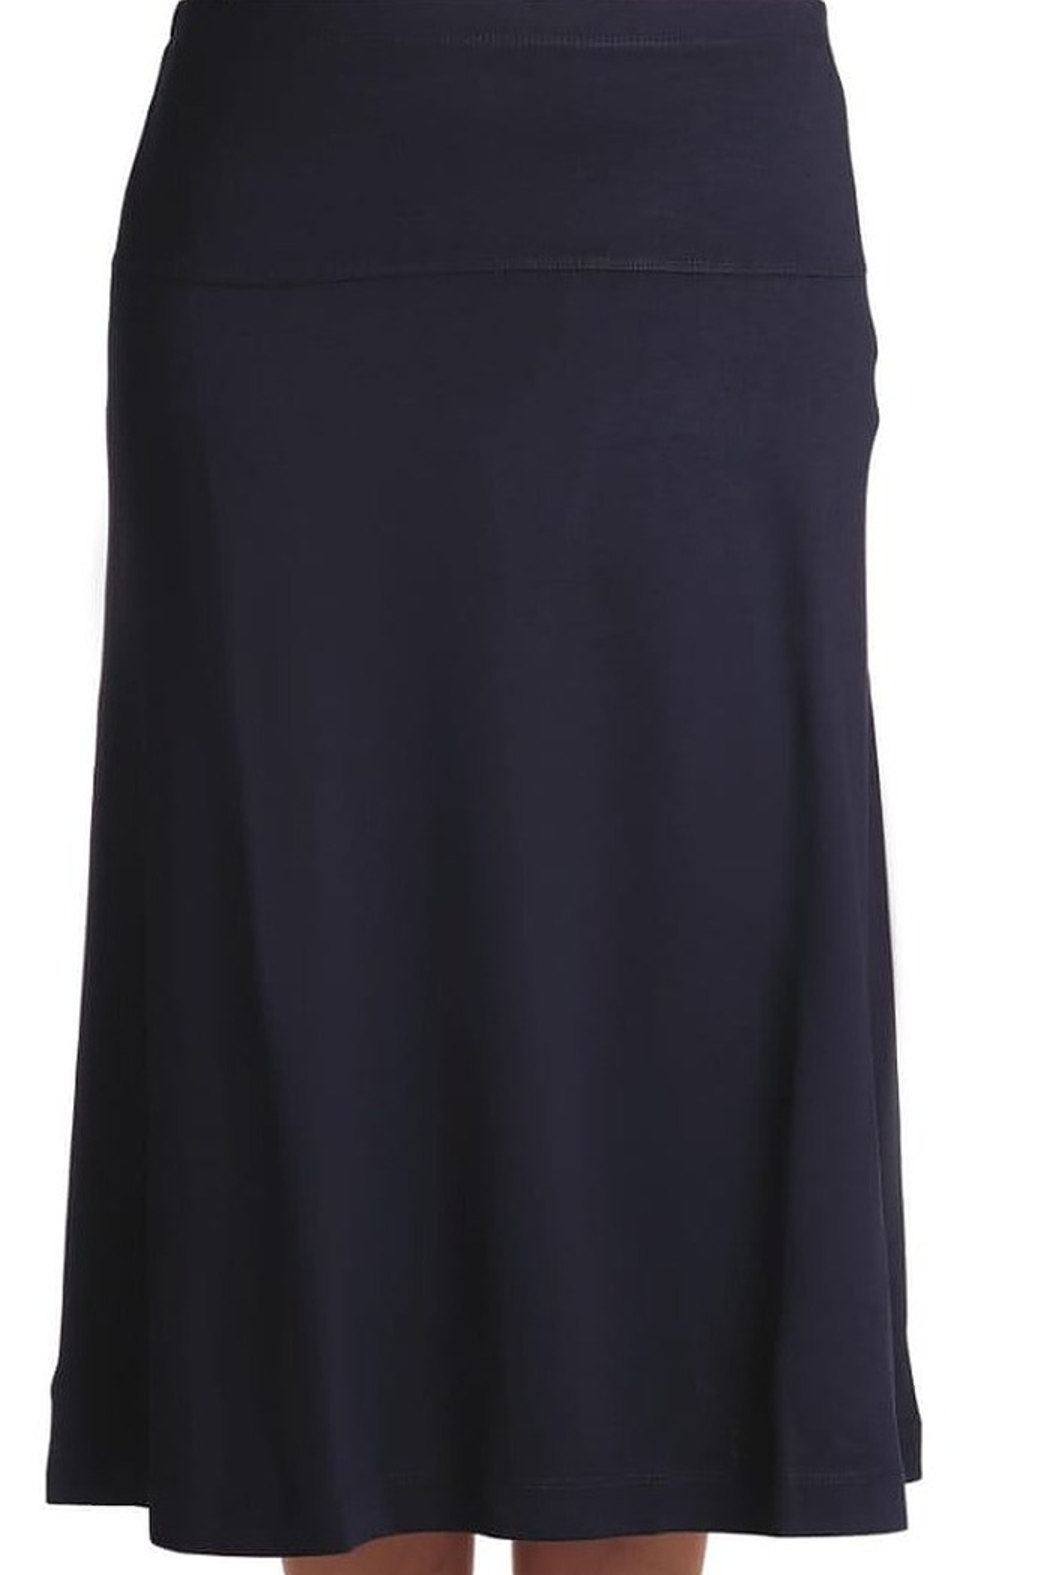 Euro Design A Line Skirt - Front Cropped Image